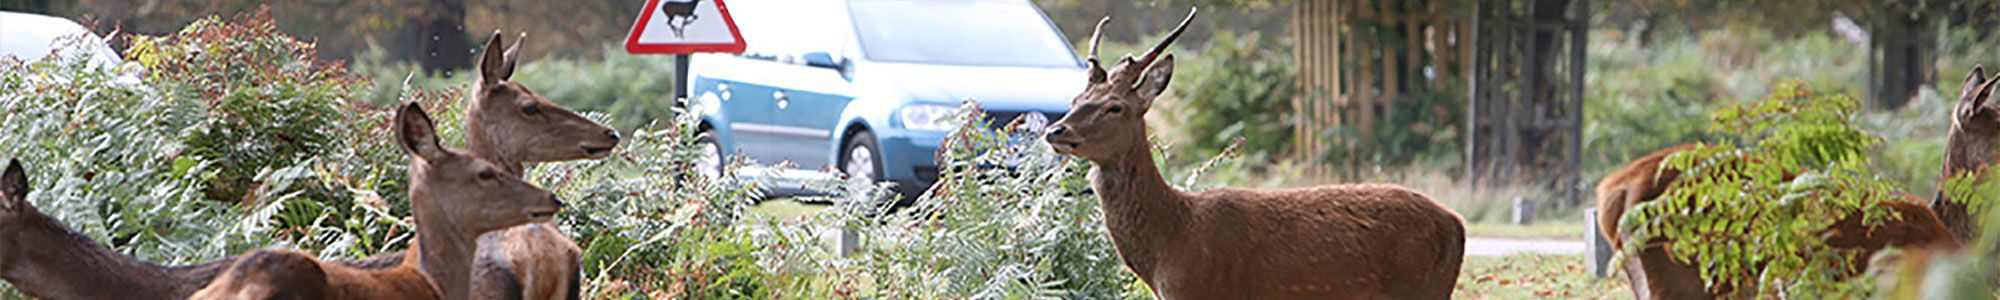 Deer on British roads